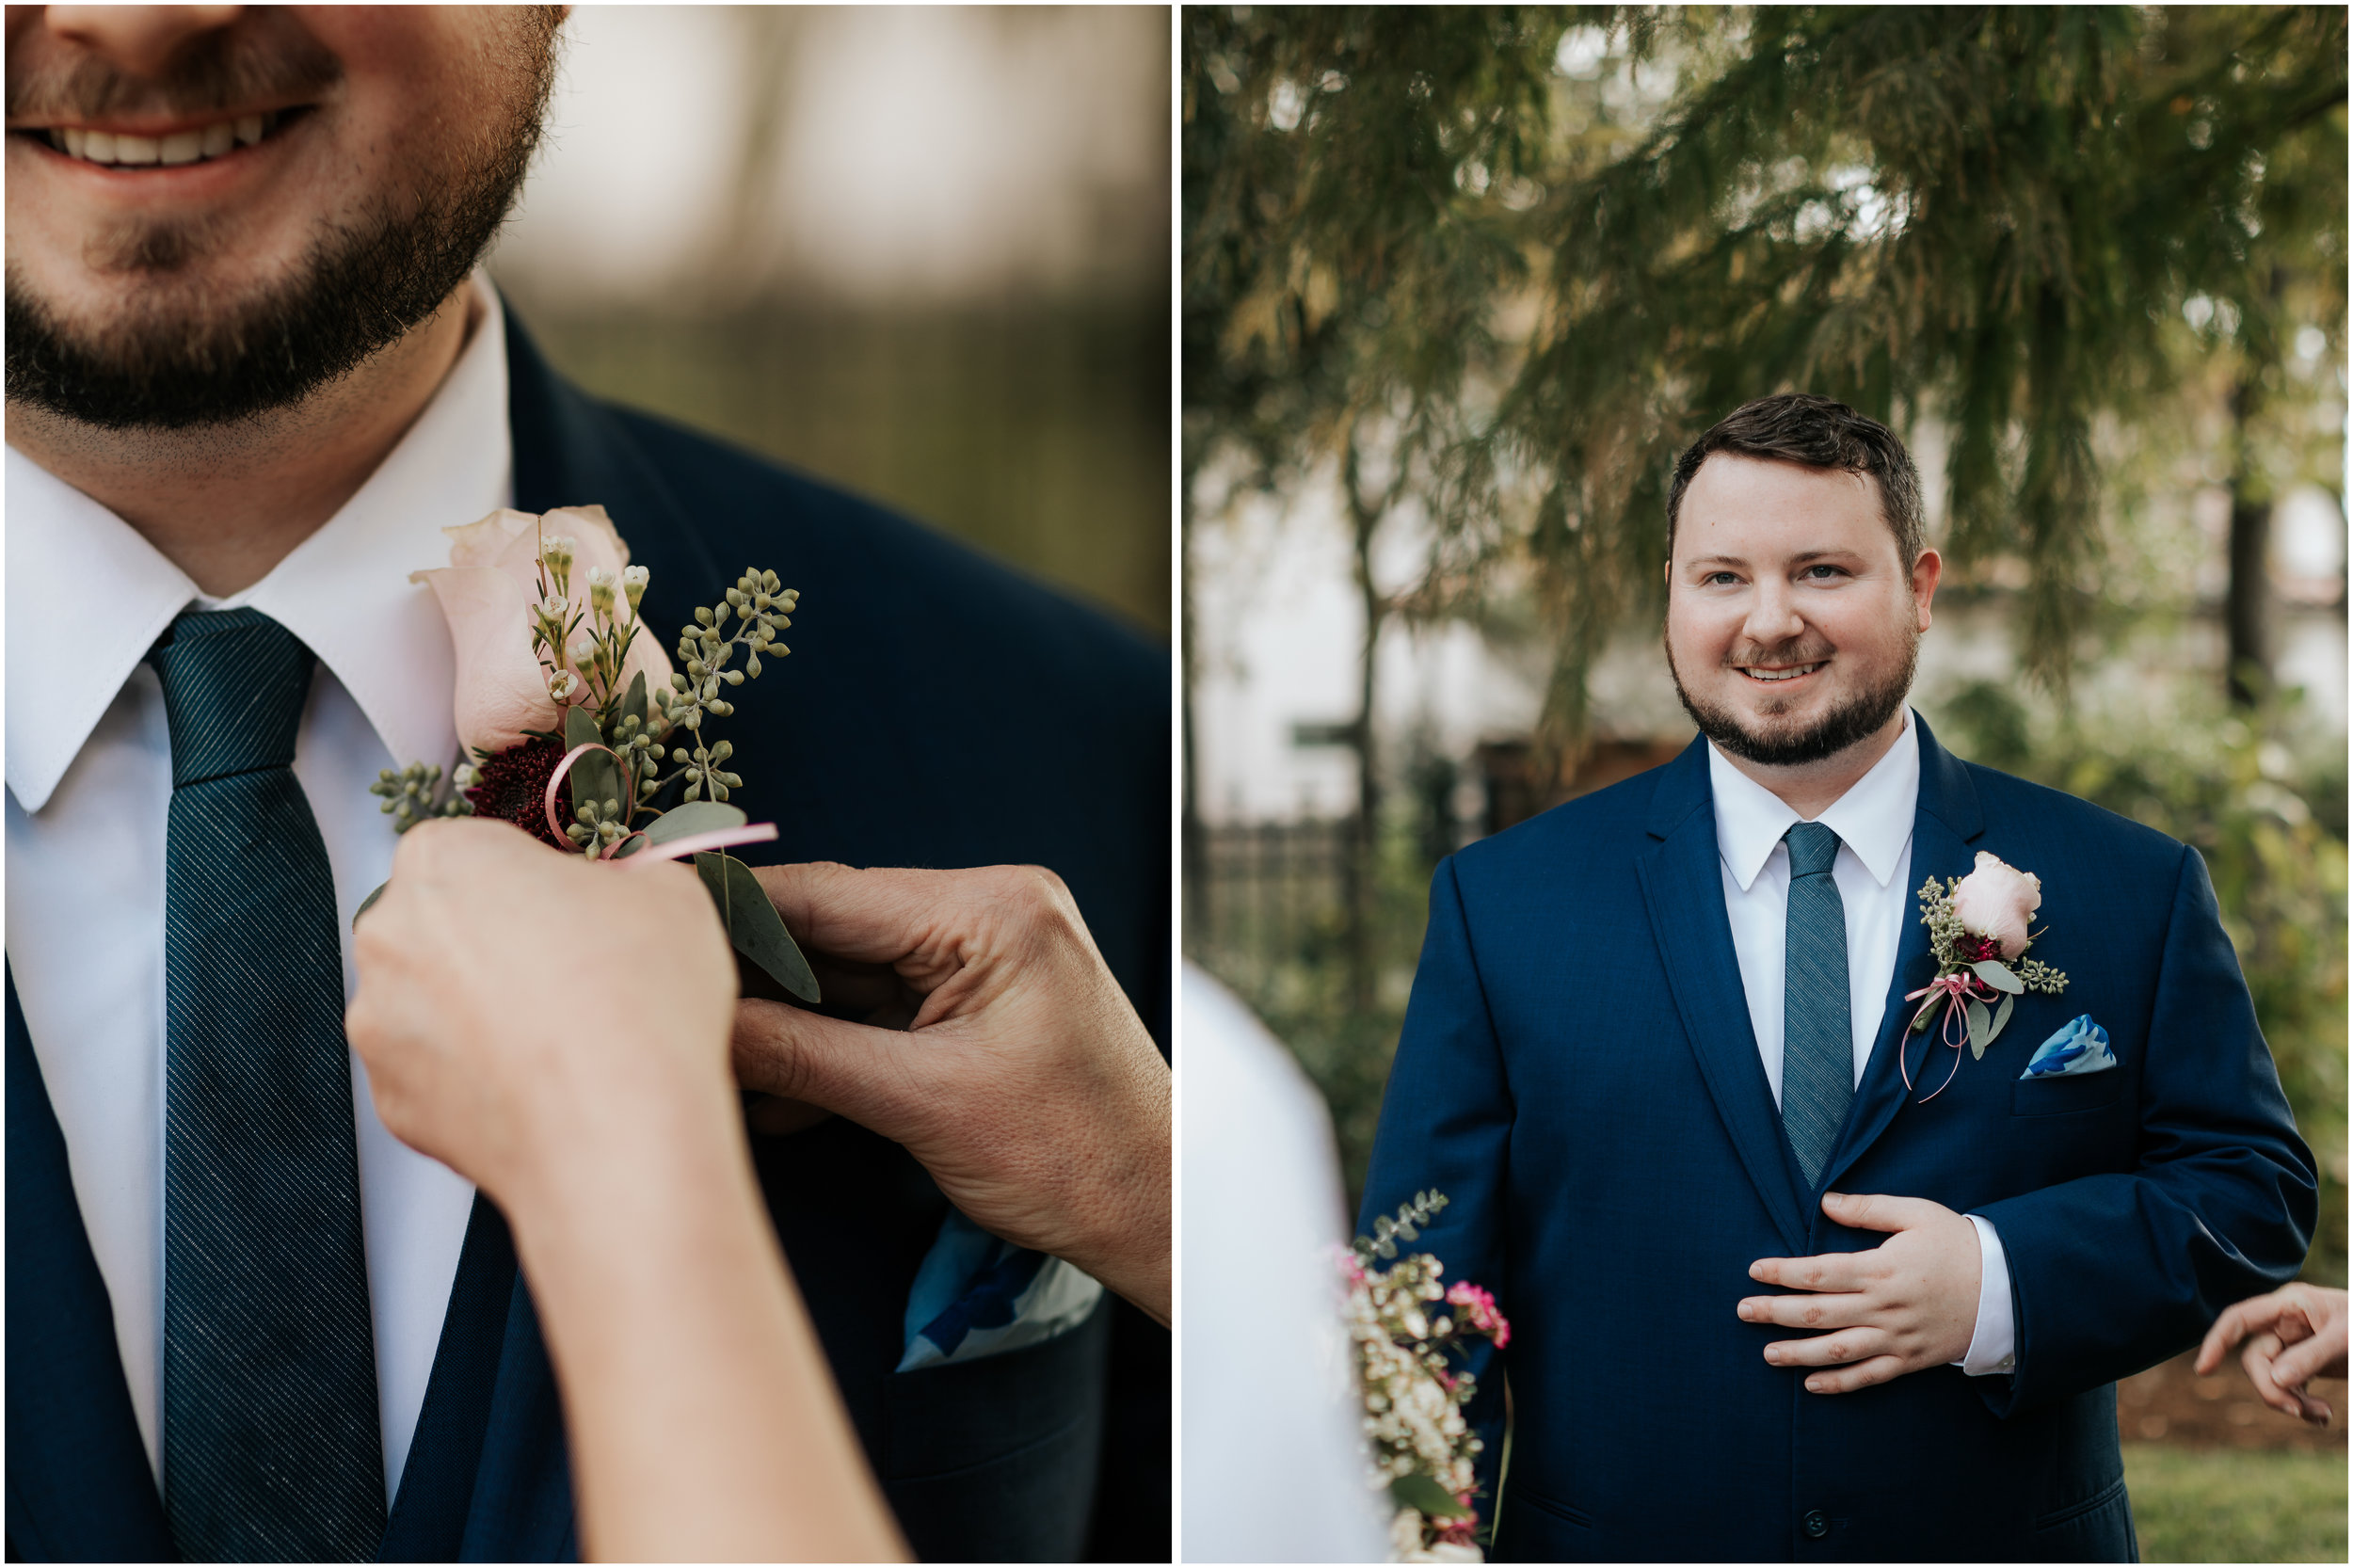 Leah Nicole Photography - Houston Wedding Photographer-Glassel Art School Engagement Session- Houston Wedding Photographer - Lake Conroe Wedding 5.jpg